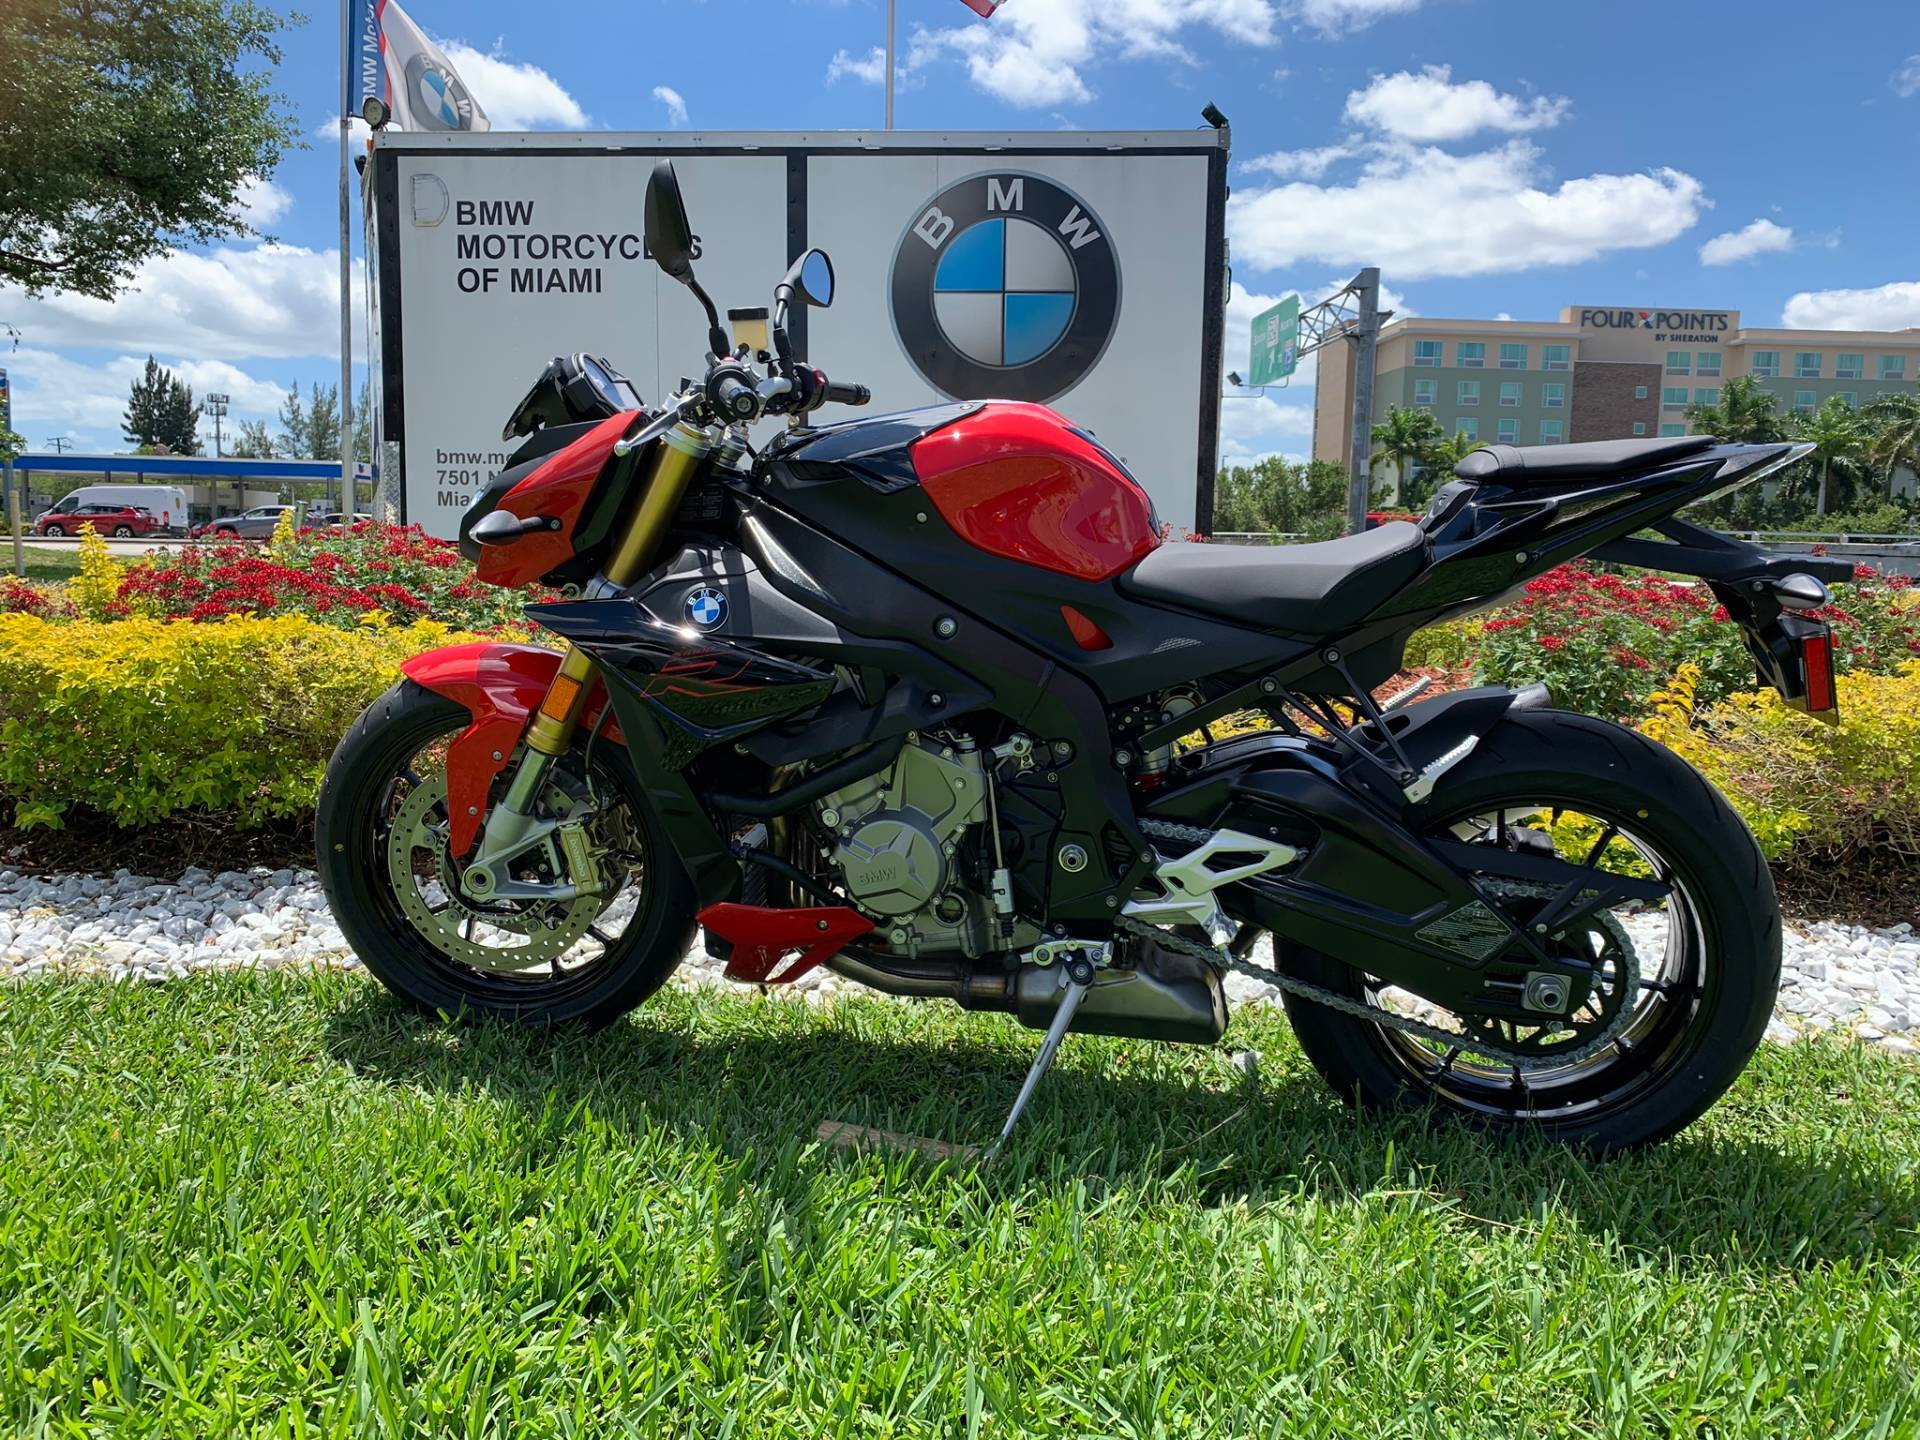 New 2019 BMW S 1000 R for sale, BMW S 1000R for sale, BMW Motorcycle S1000R, new BMW R, Sport, roadster, naked. BMW Motorcycles of Miami, Motorcycles of Miami, Motorcycles Miami, New Motorcycles, Used Motorcycles, pre-owned. #BMWMotorcyclesOfMiami #MotorcyclesOfMiami #MotorcyclesMiami - Photo 8